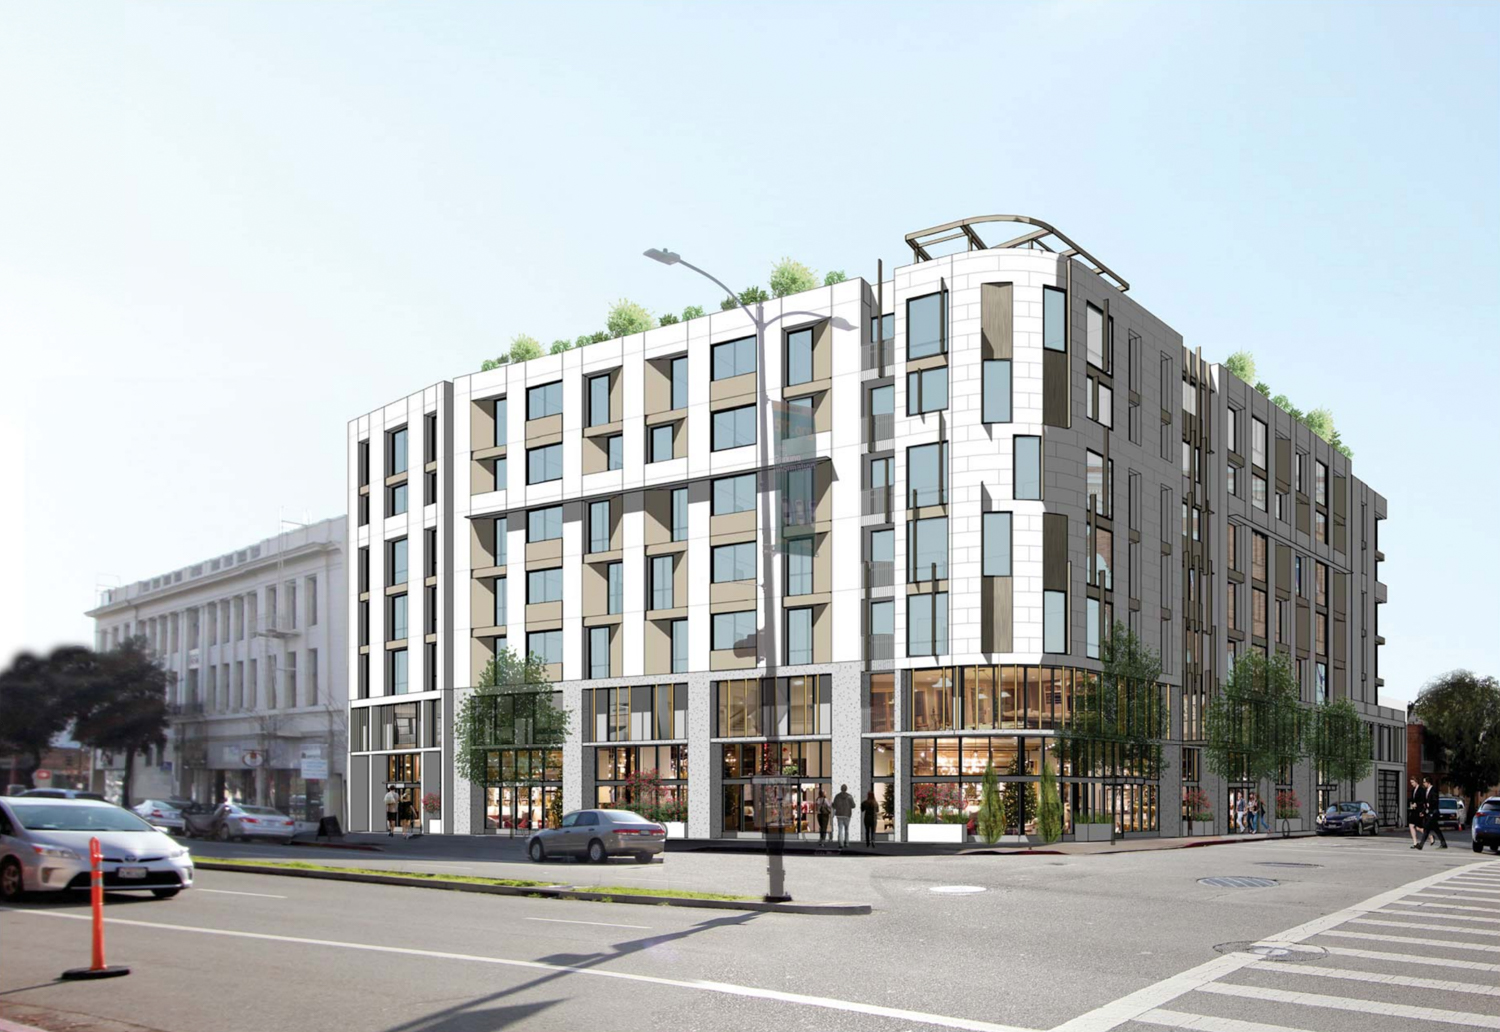 2176 and 2150 Kittredge Street, rendering design by Kava Massih Architects